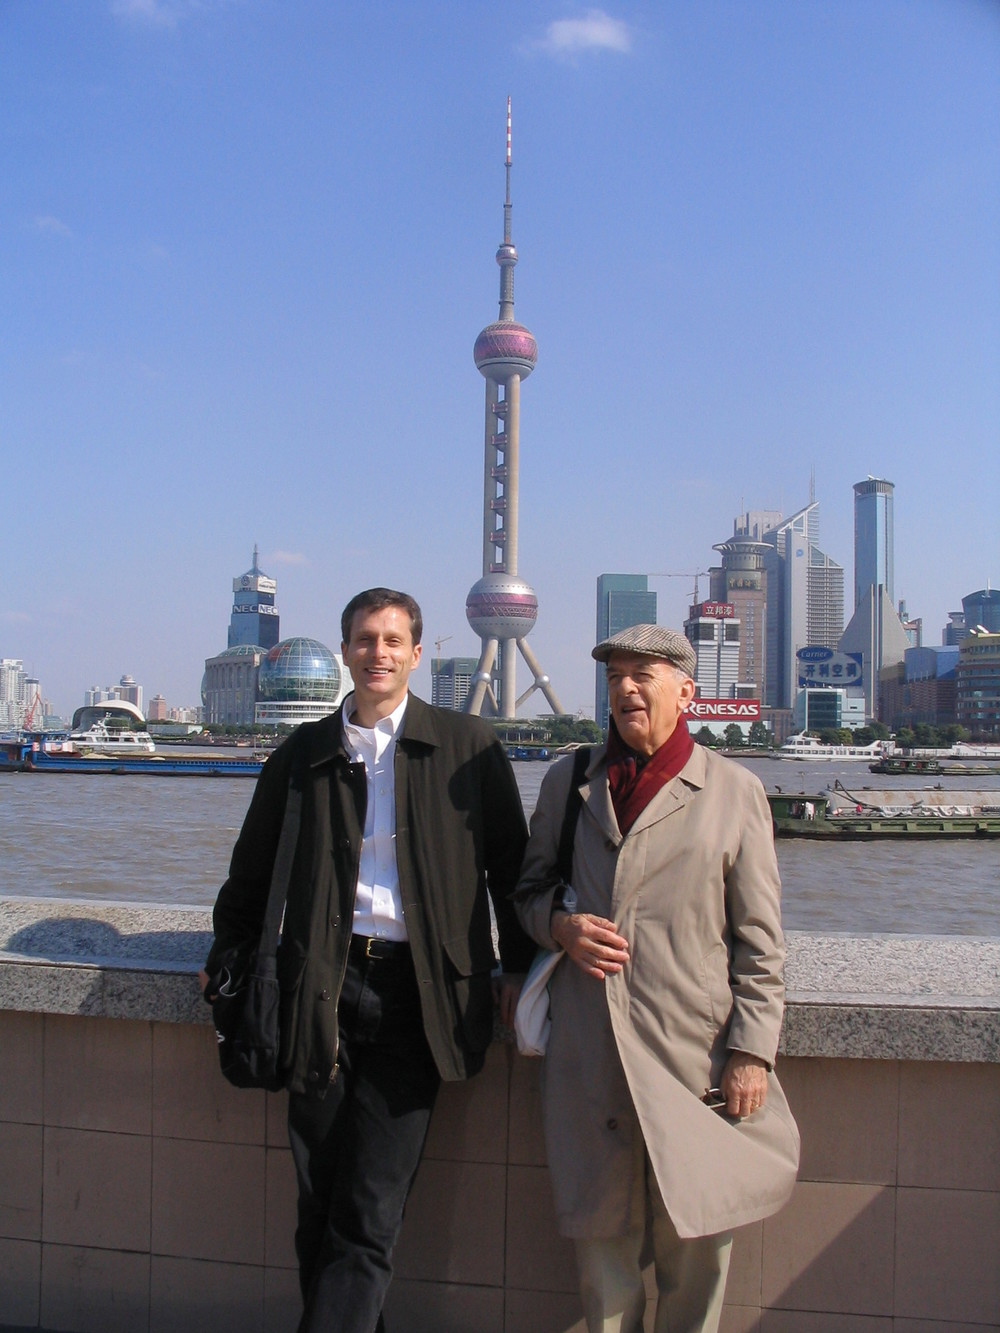 When I went to Shanghai with Dick Ottinger in around 2005, it was his first visit to that city in nearly 30 years when he'd gone as a member of the first Congressional delegation after Nixon's historic trip.